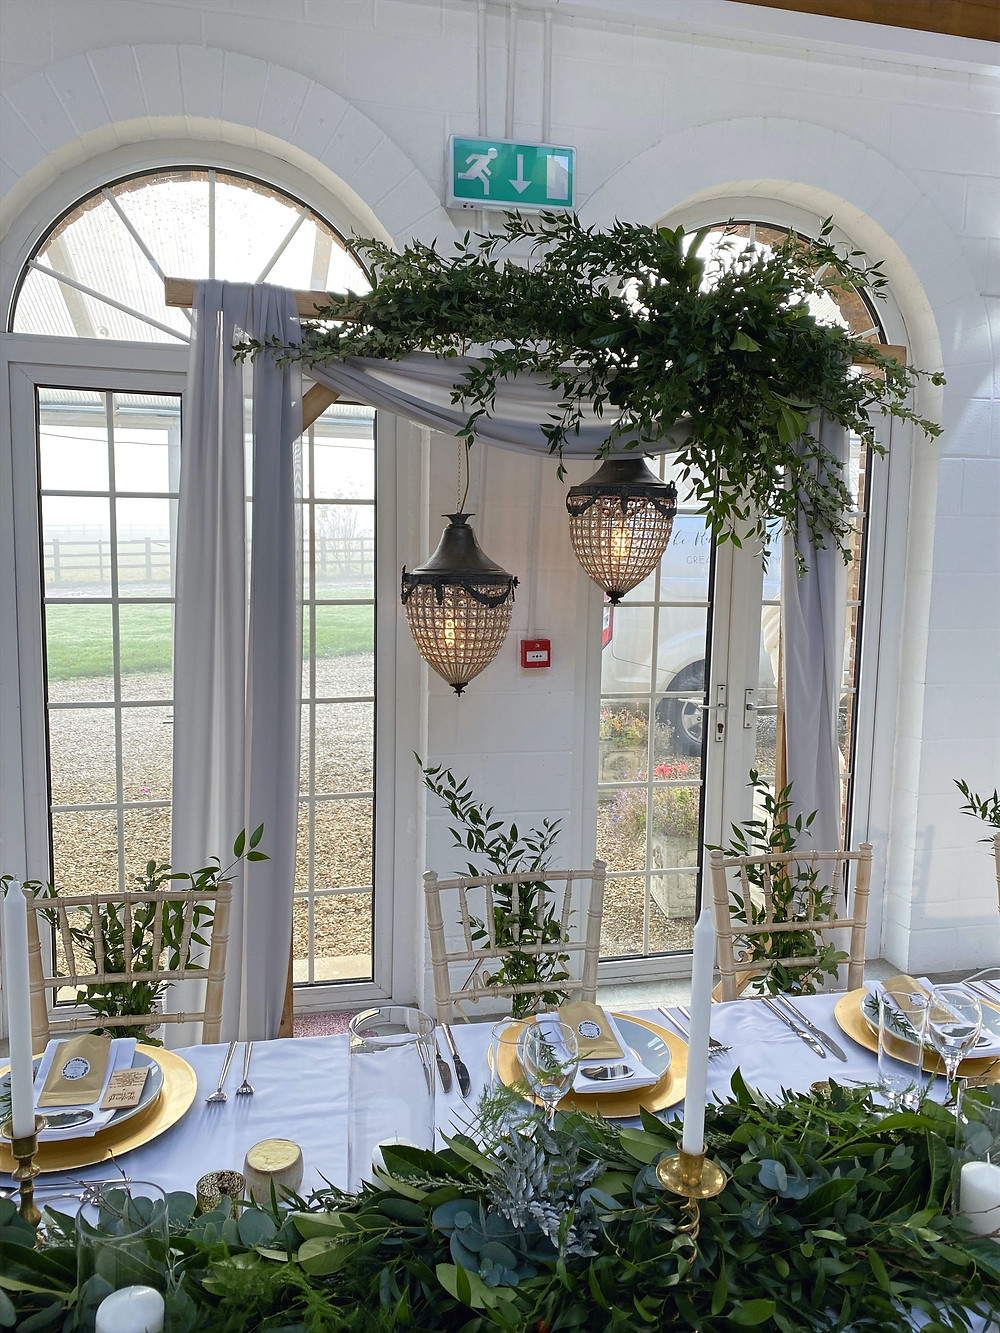 archway backdrop with vintage lights and greenery